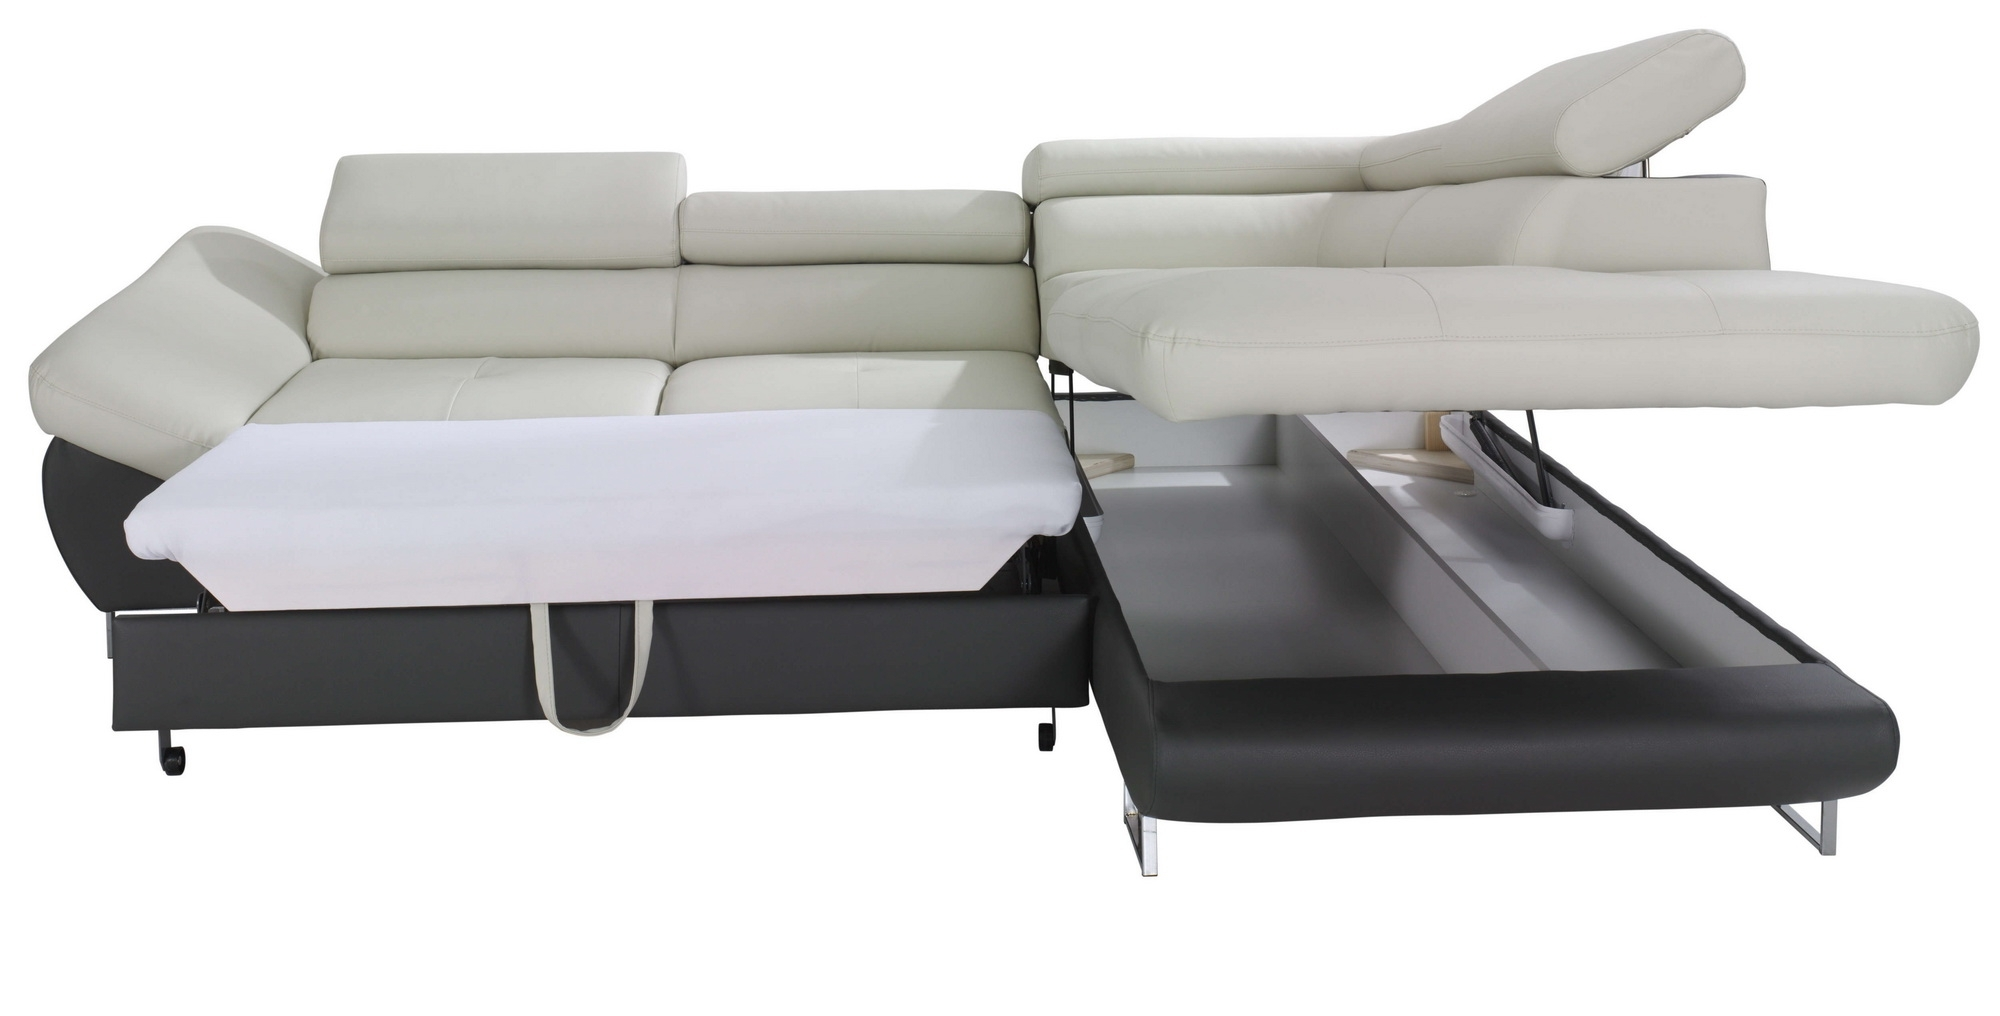 Best And Newest Storage Sofas Within Fabio Sectional Sofa Sleeper With Storage, Creative Furniture (View 3 of 15)